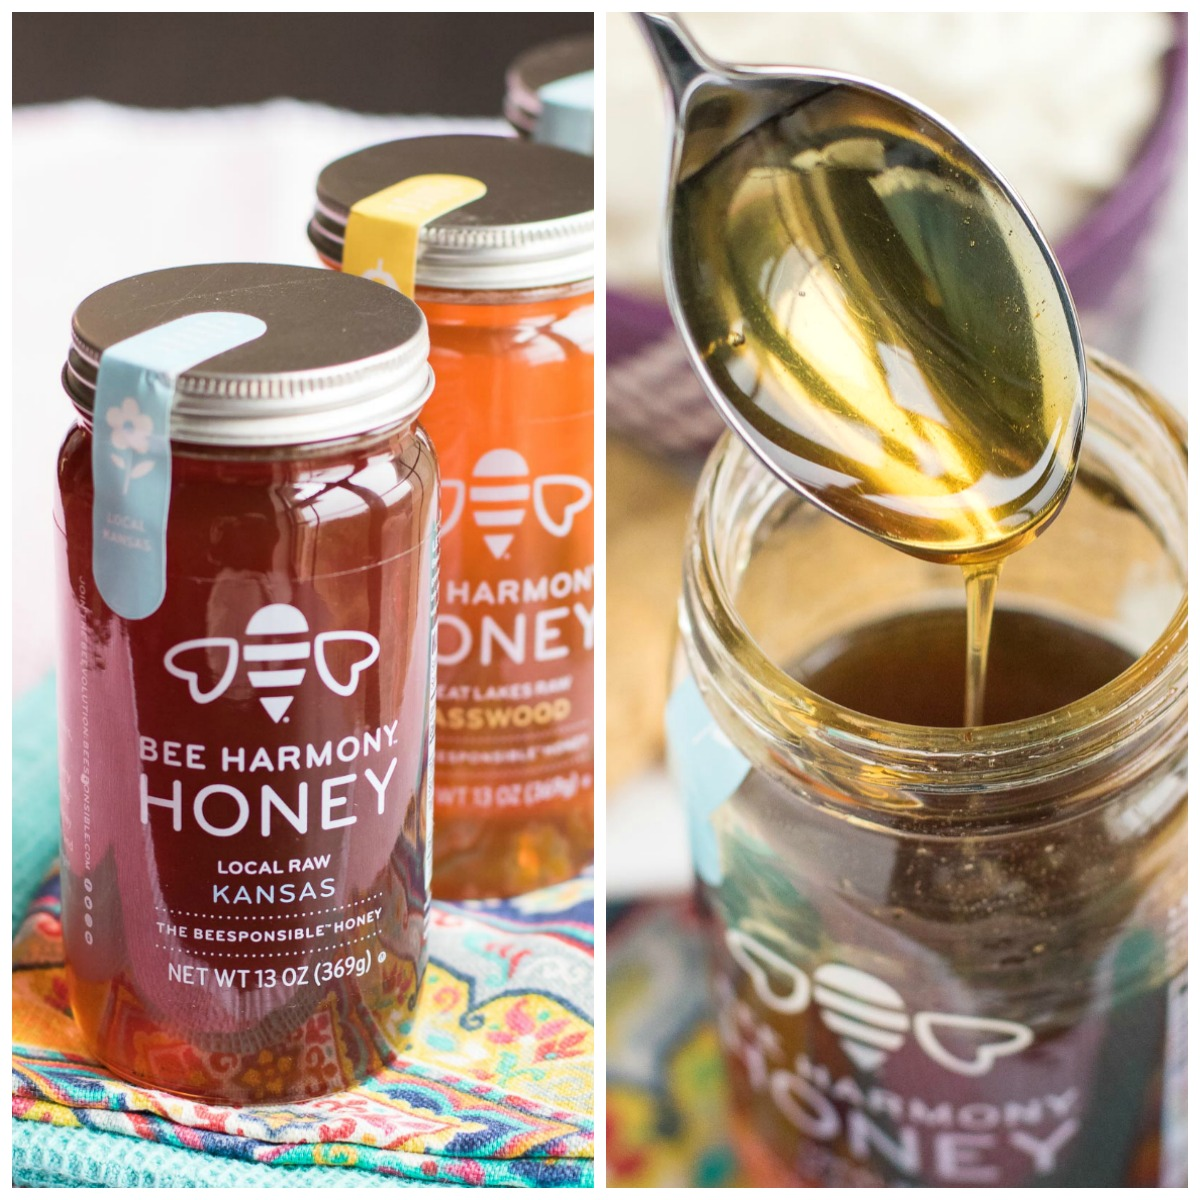 Bee Harmony is the #beesponsible #honey!